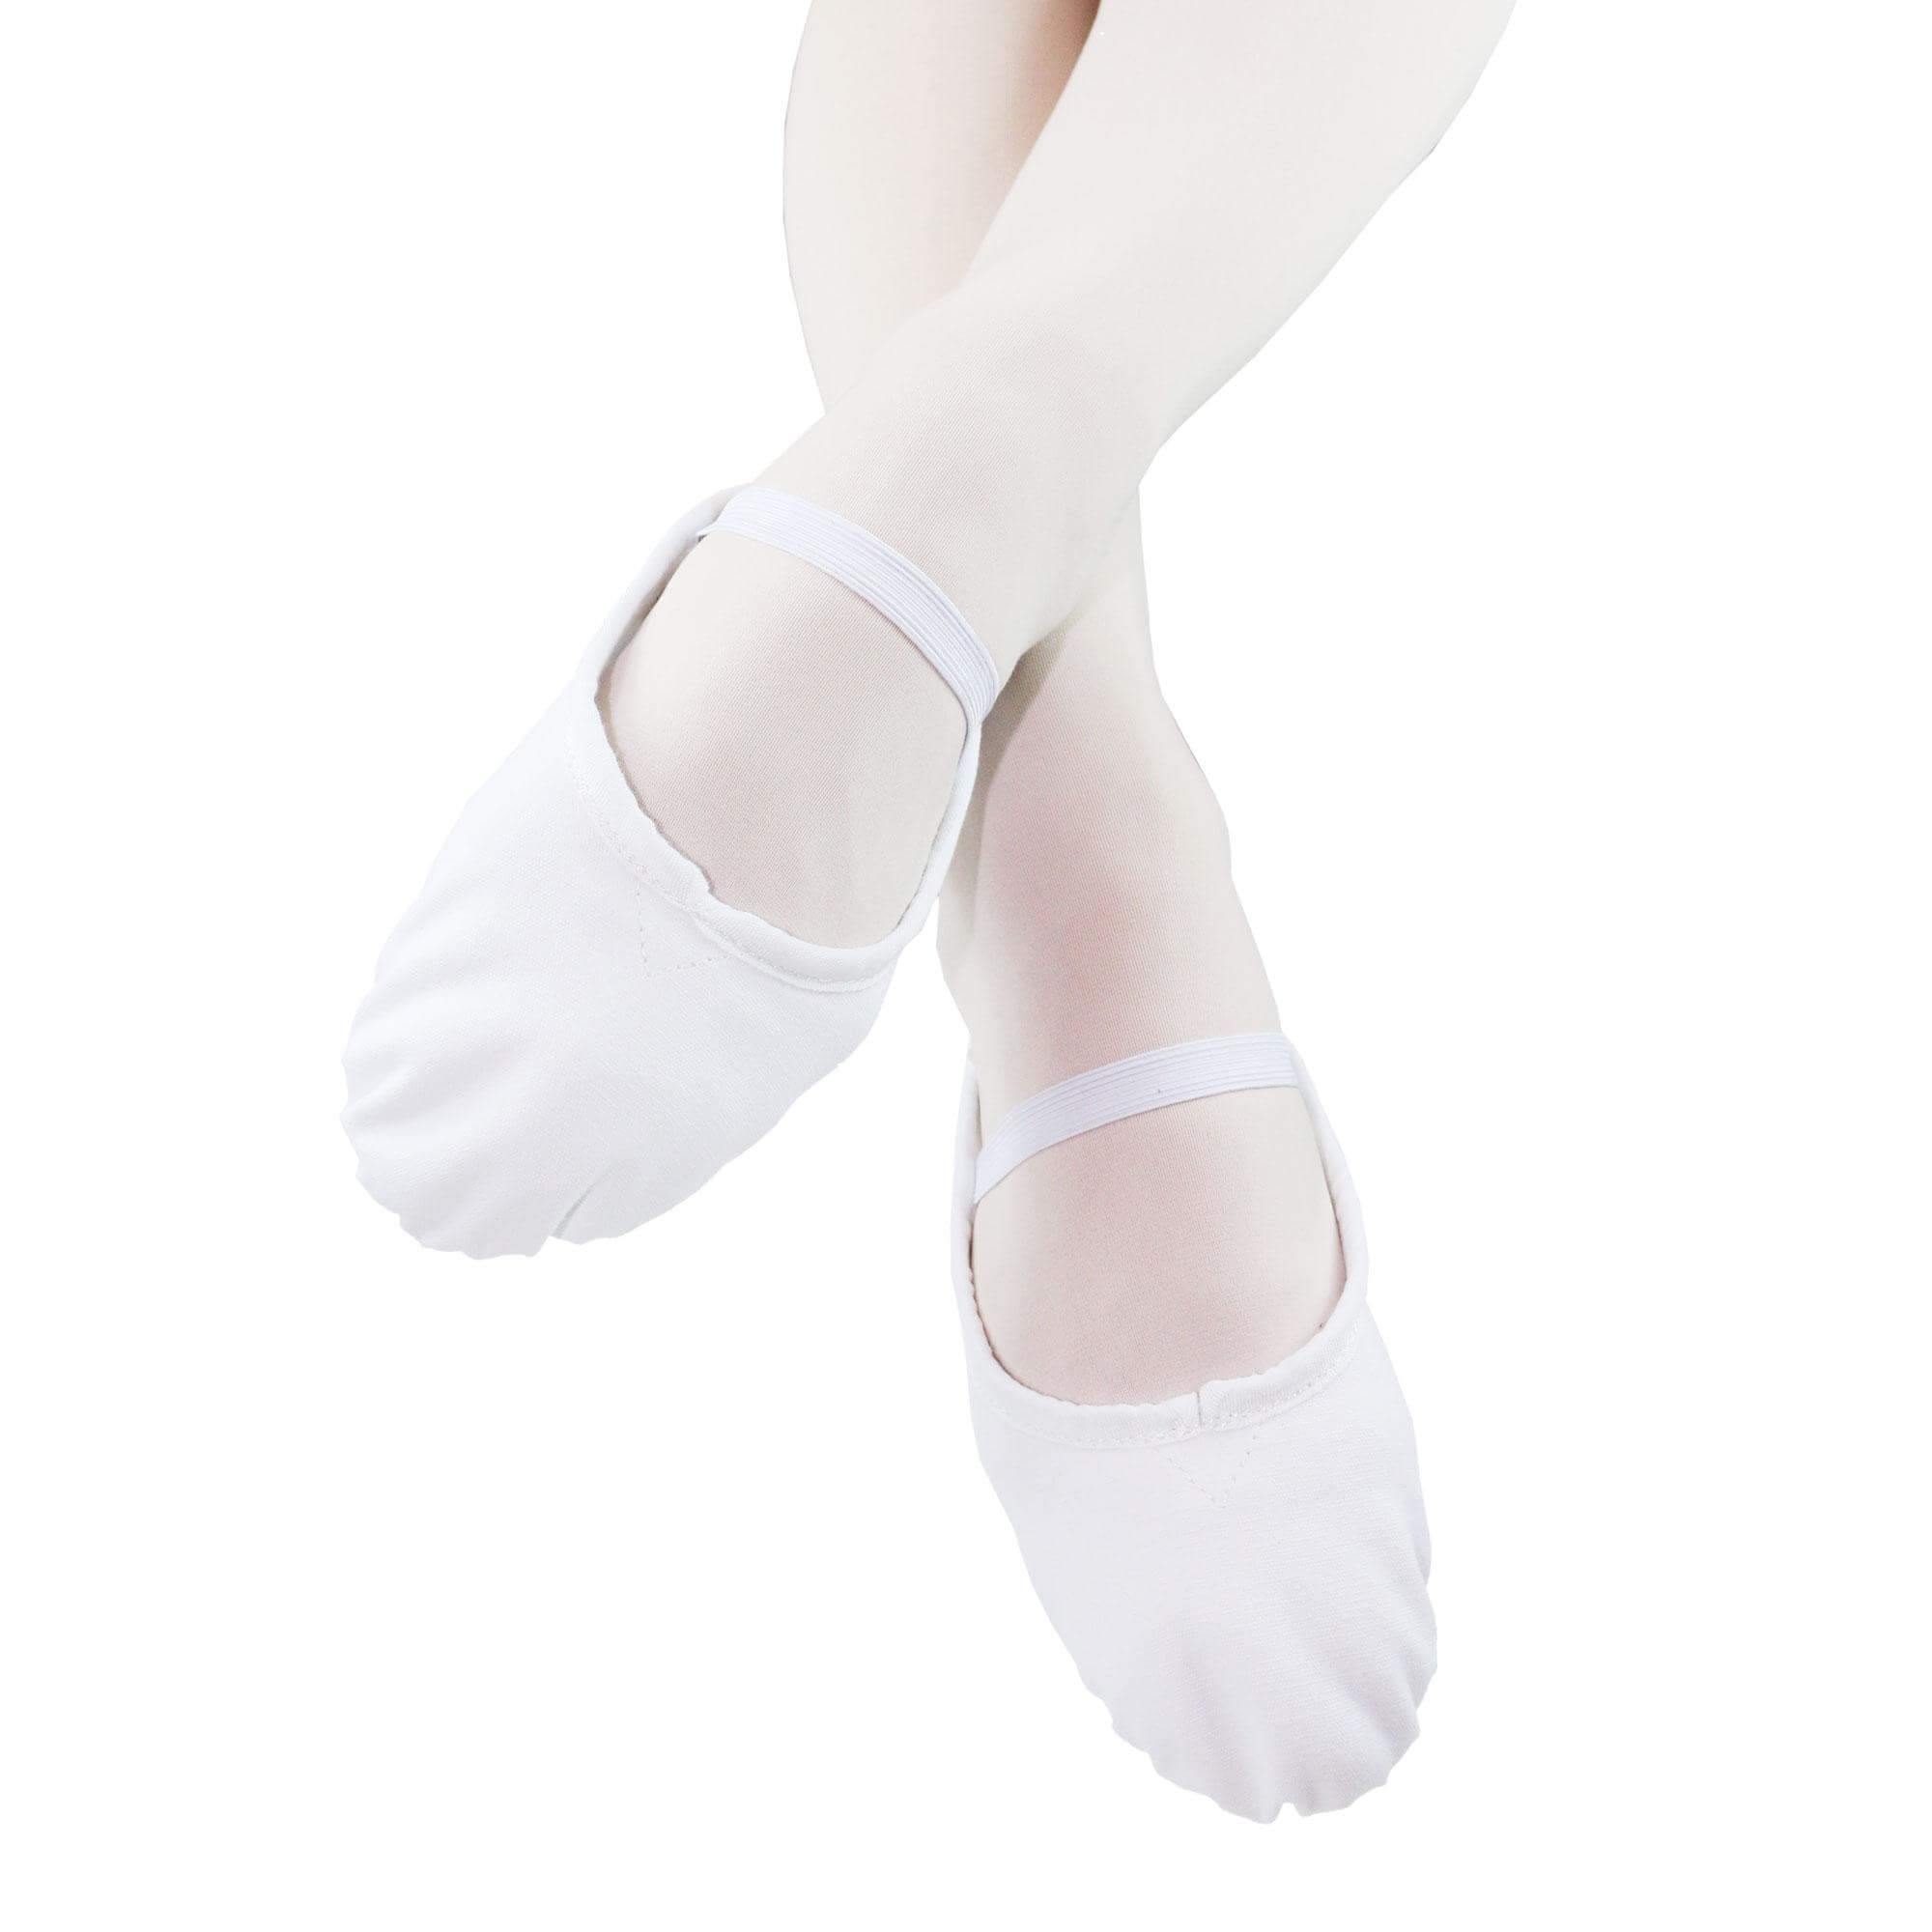 Danzcue Child Full Sole Canvas Ballet Slipper